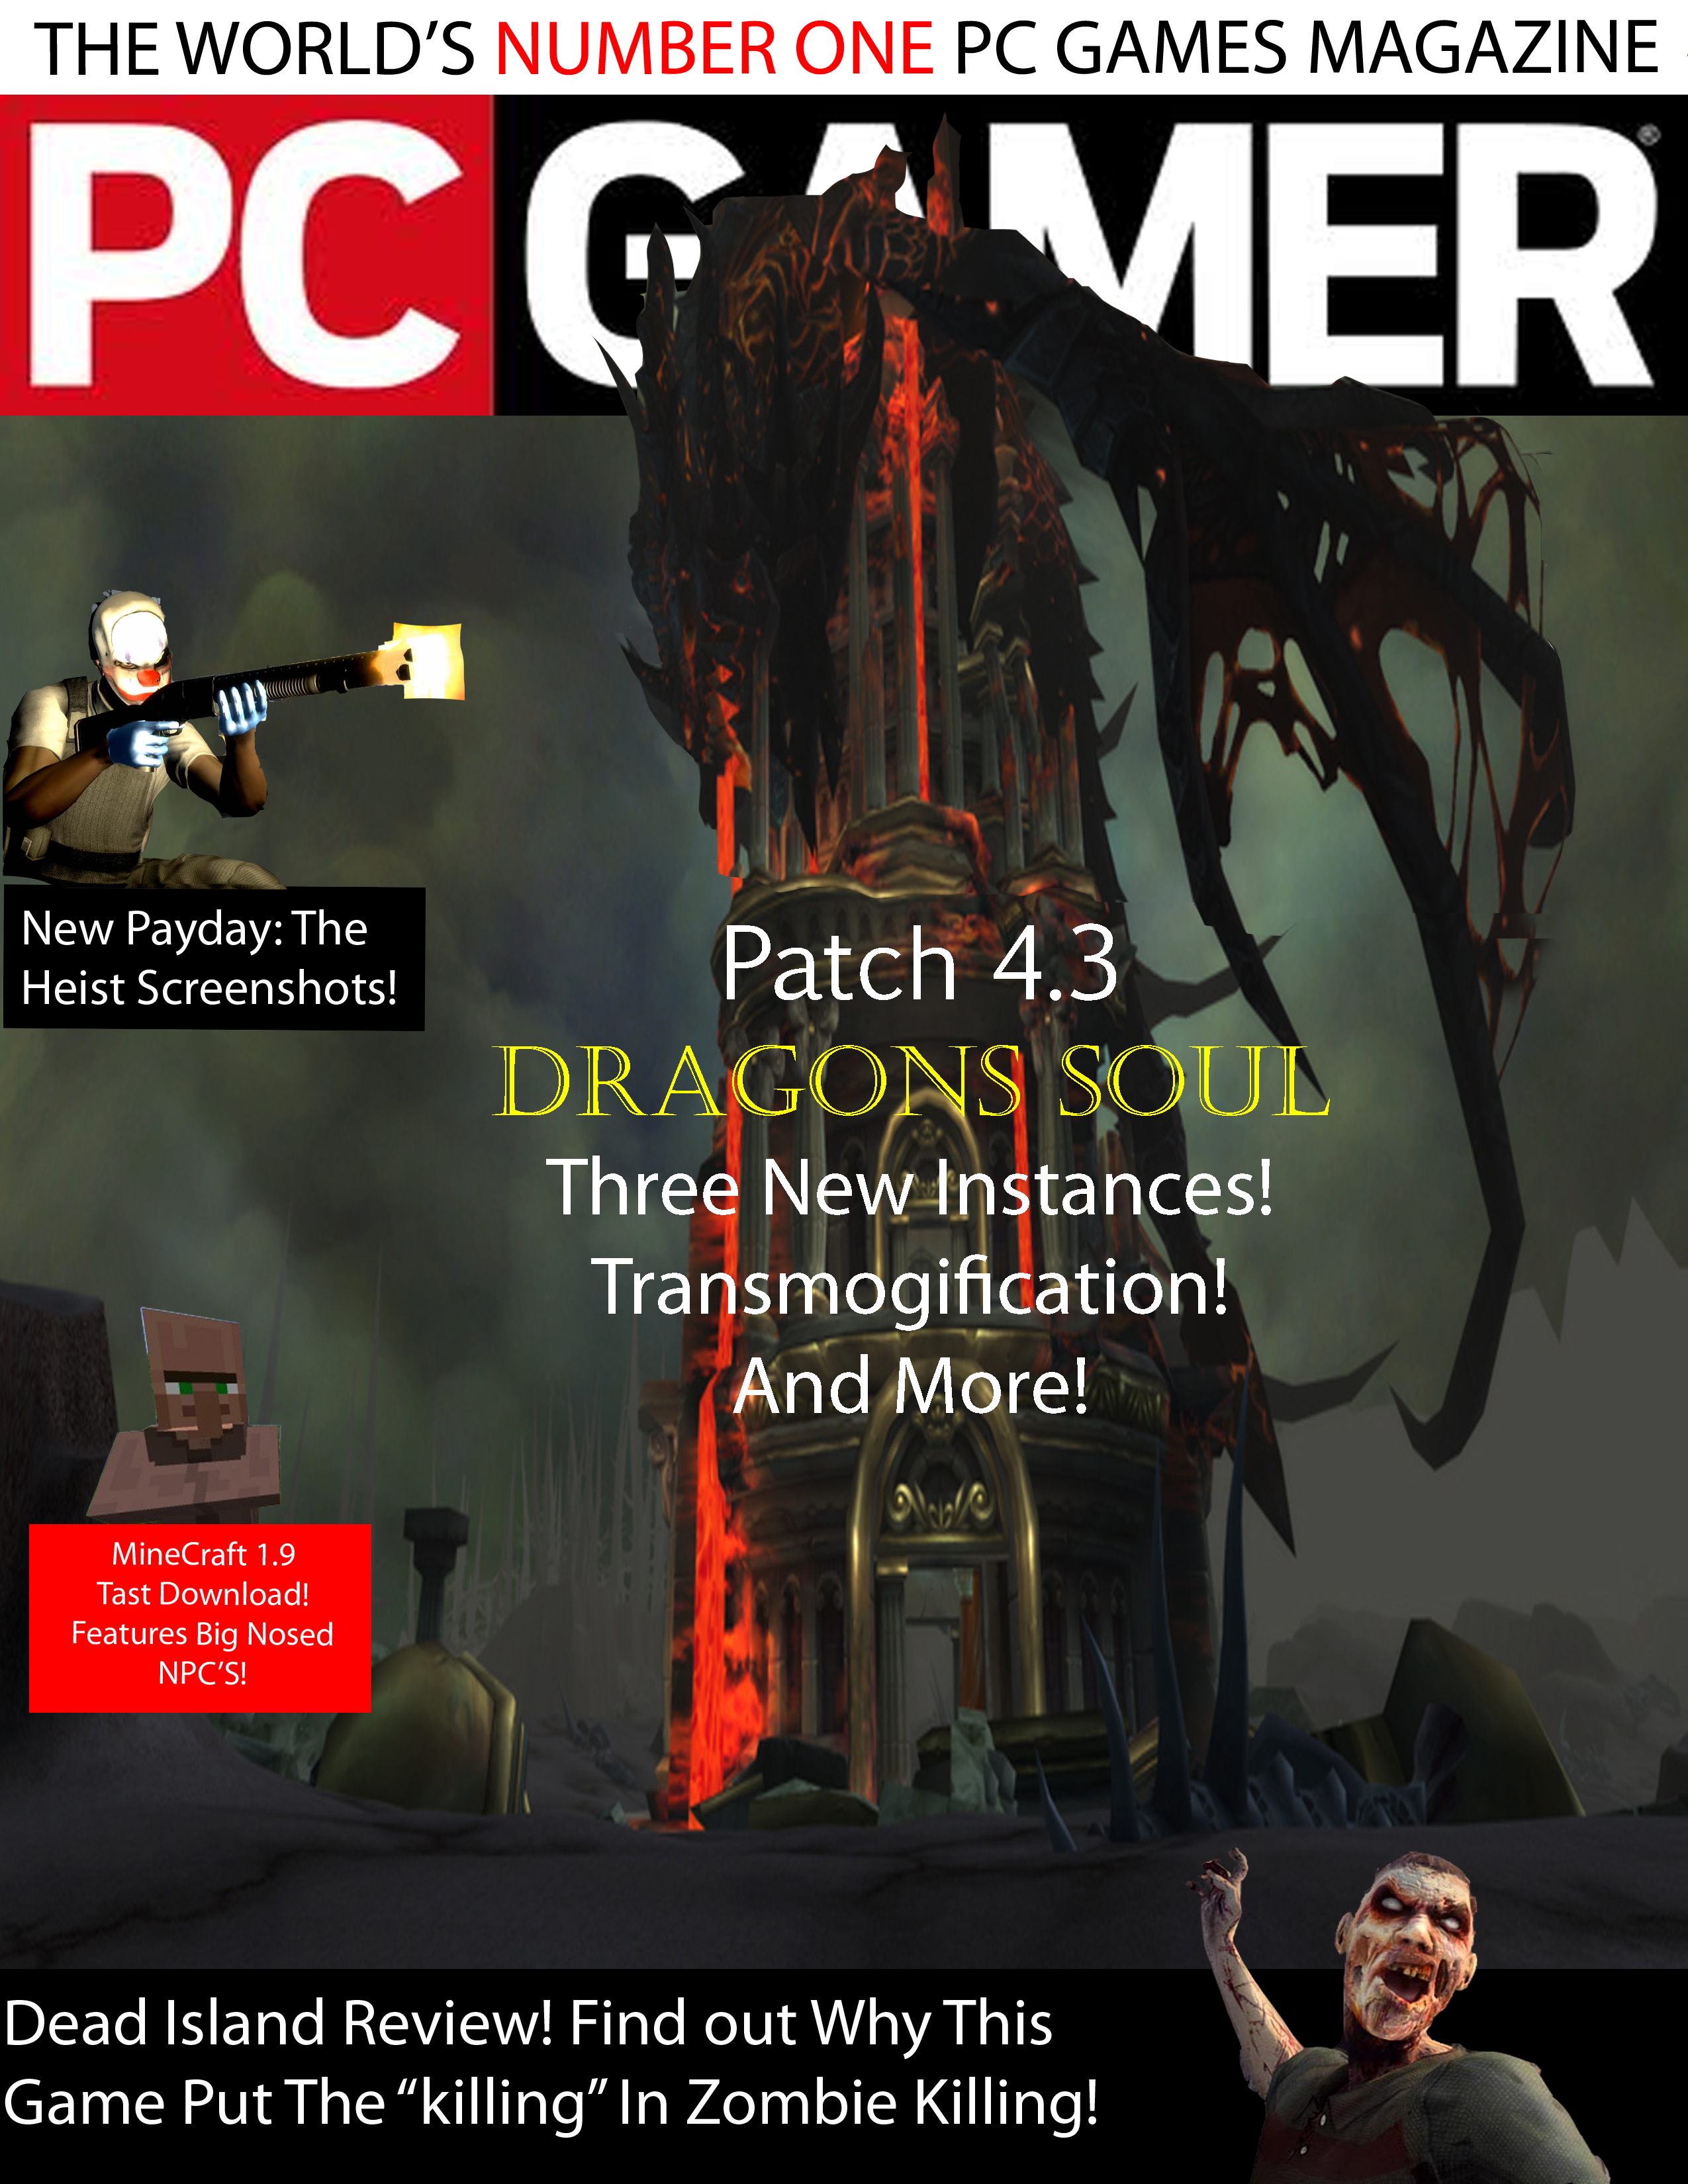 Magazine Front – PC Gamer | cchappel